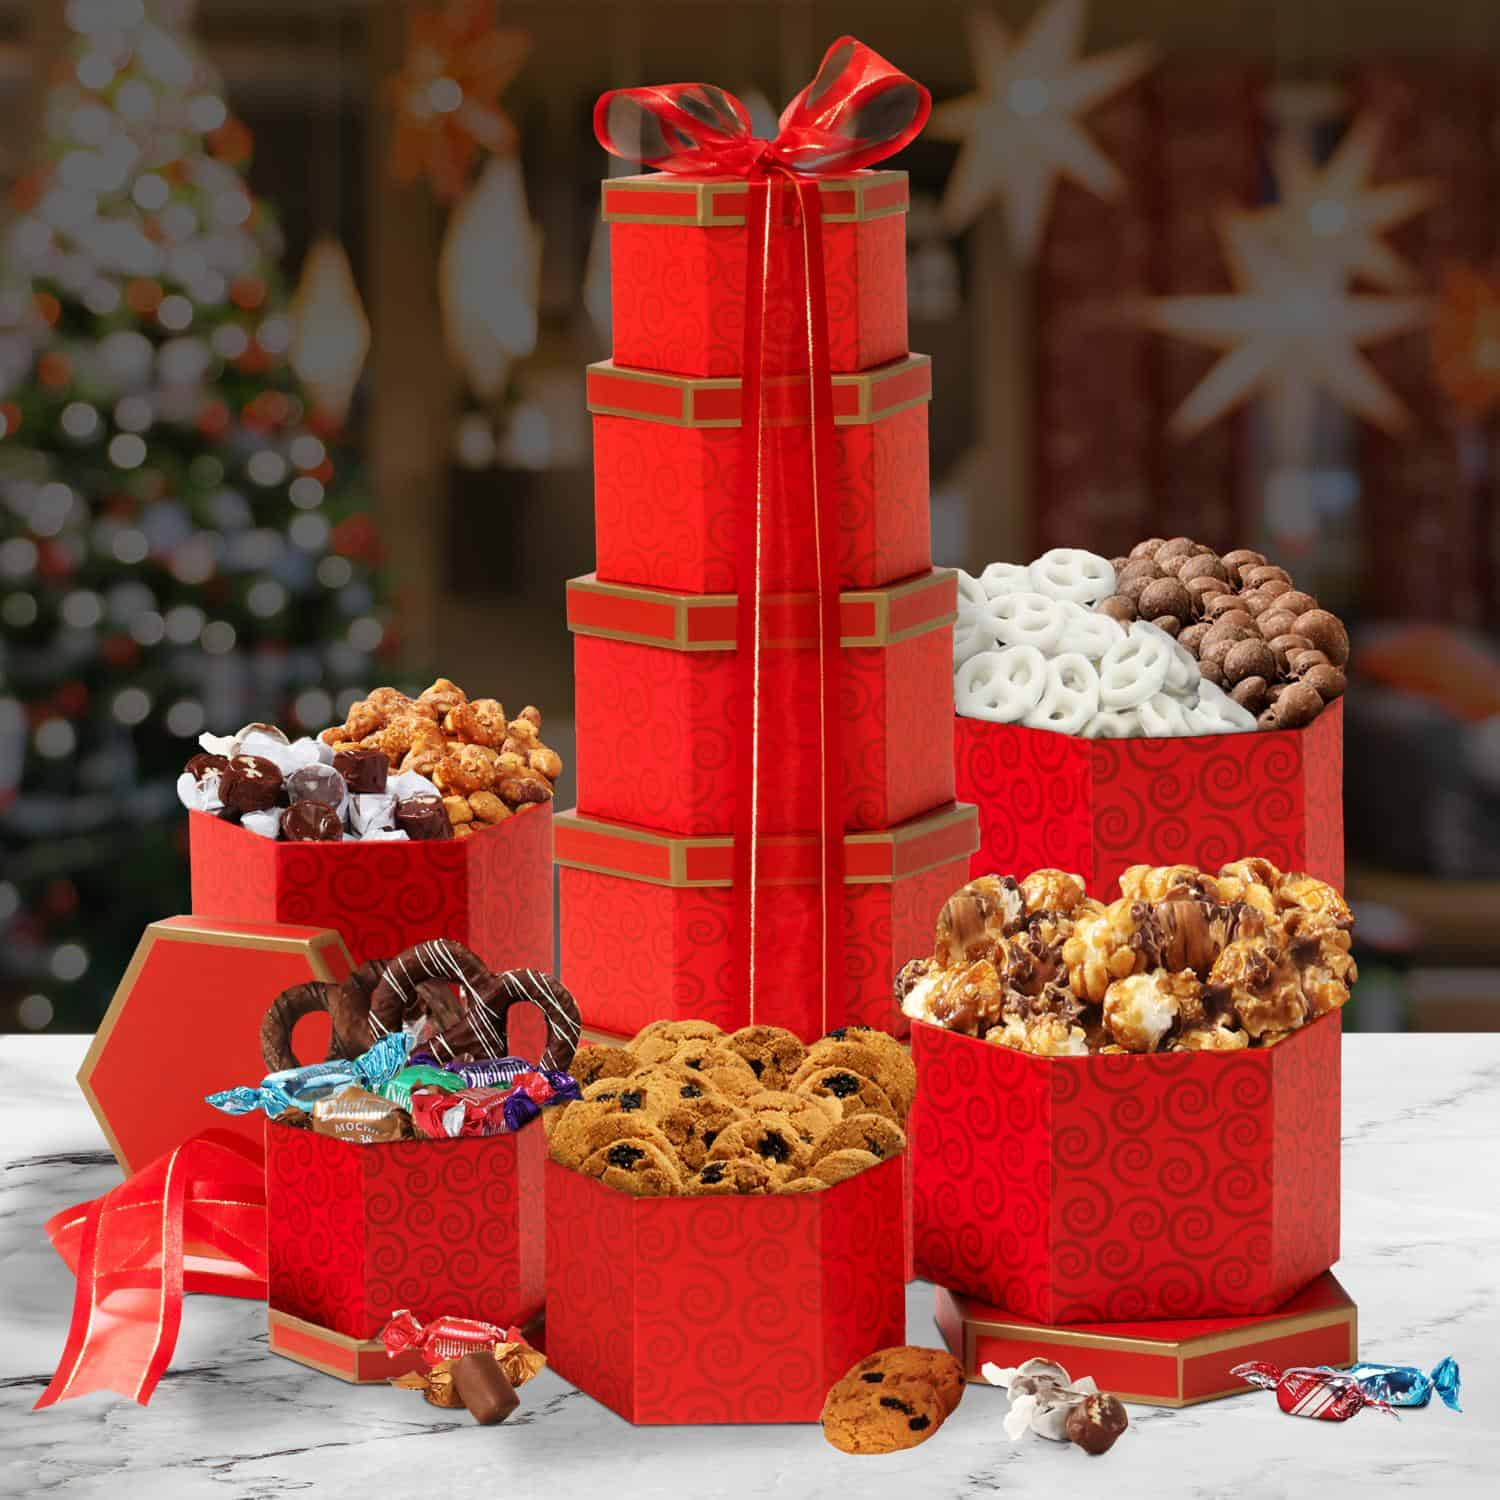 Ravishing in Red Holiday Gift Tower